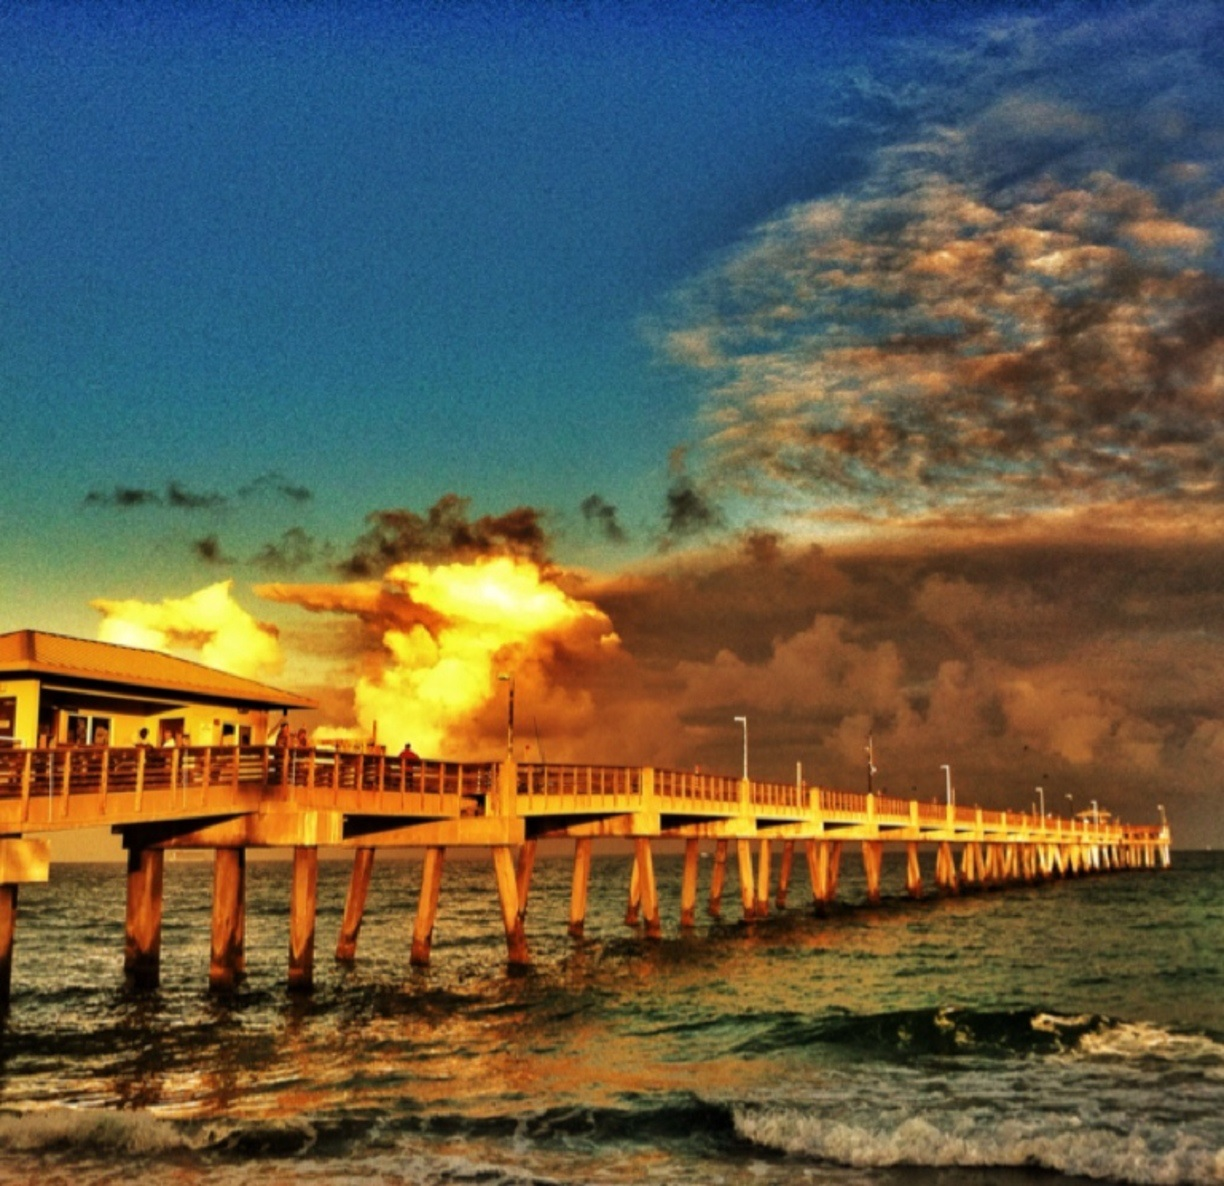 With views like this, it's no wonder that Tark's is among the best restaurants in Fort Lauderdale